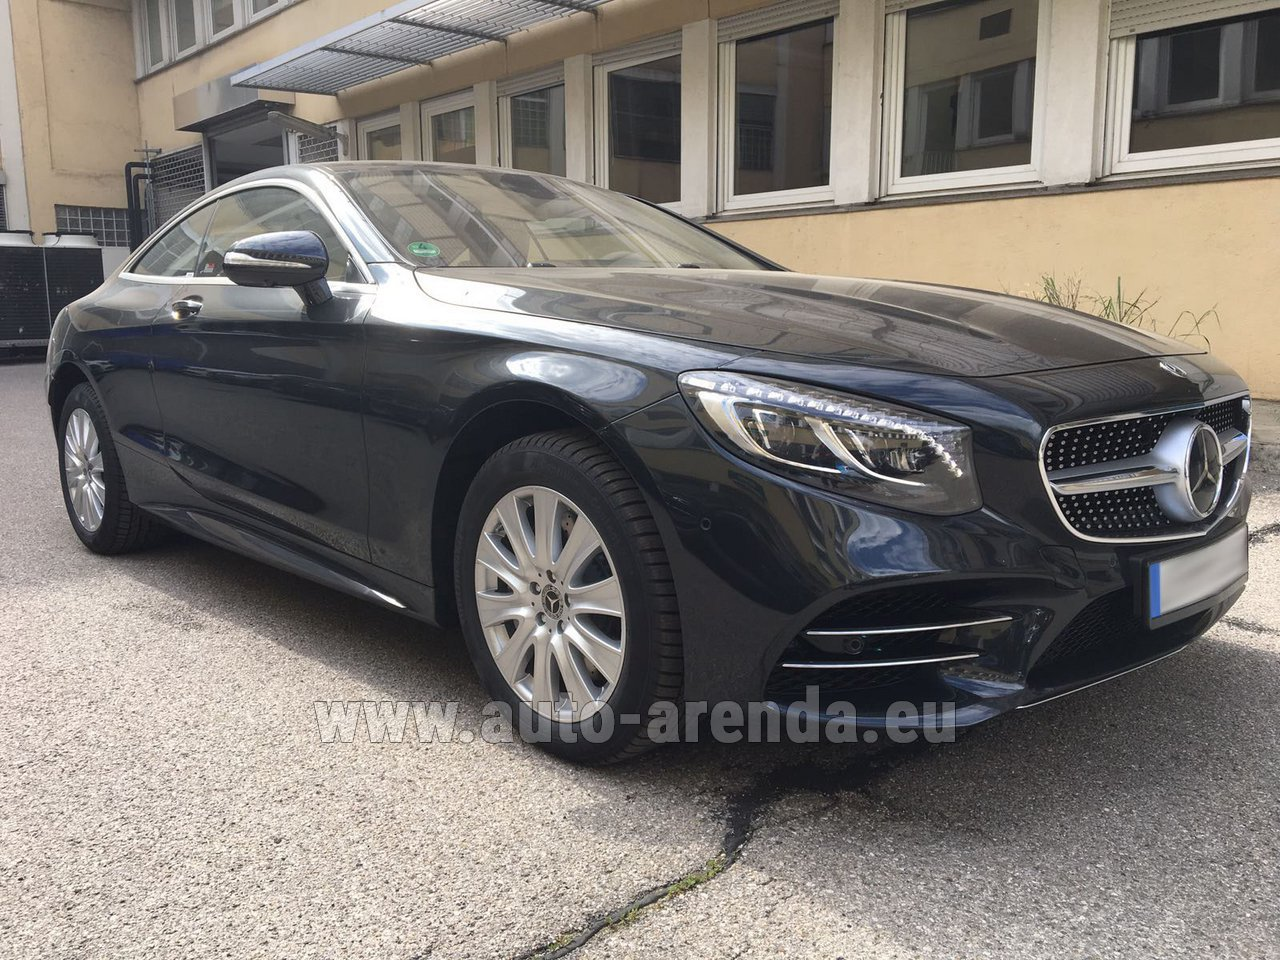 Cavalaire sur mer mercedes benz s class s 560 4matic coupe for Mercedes benz rental prices